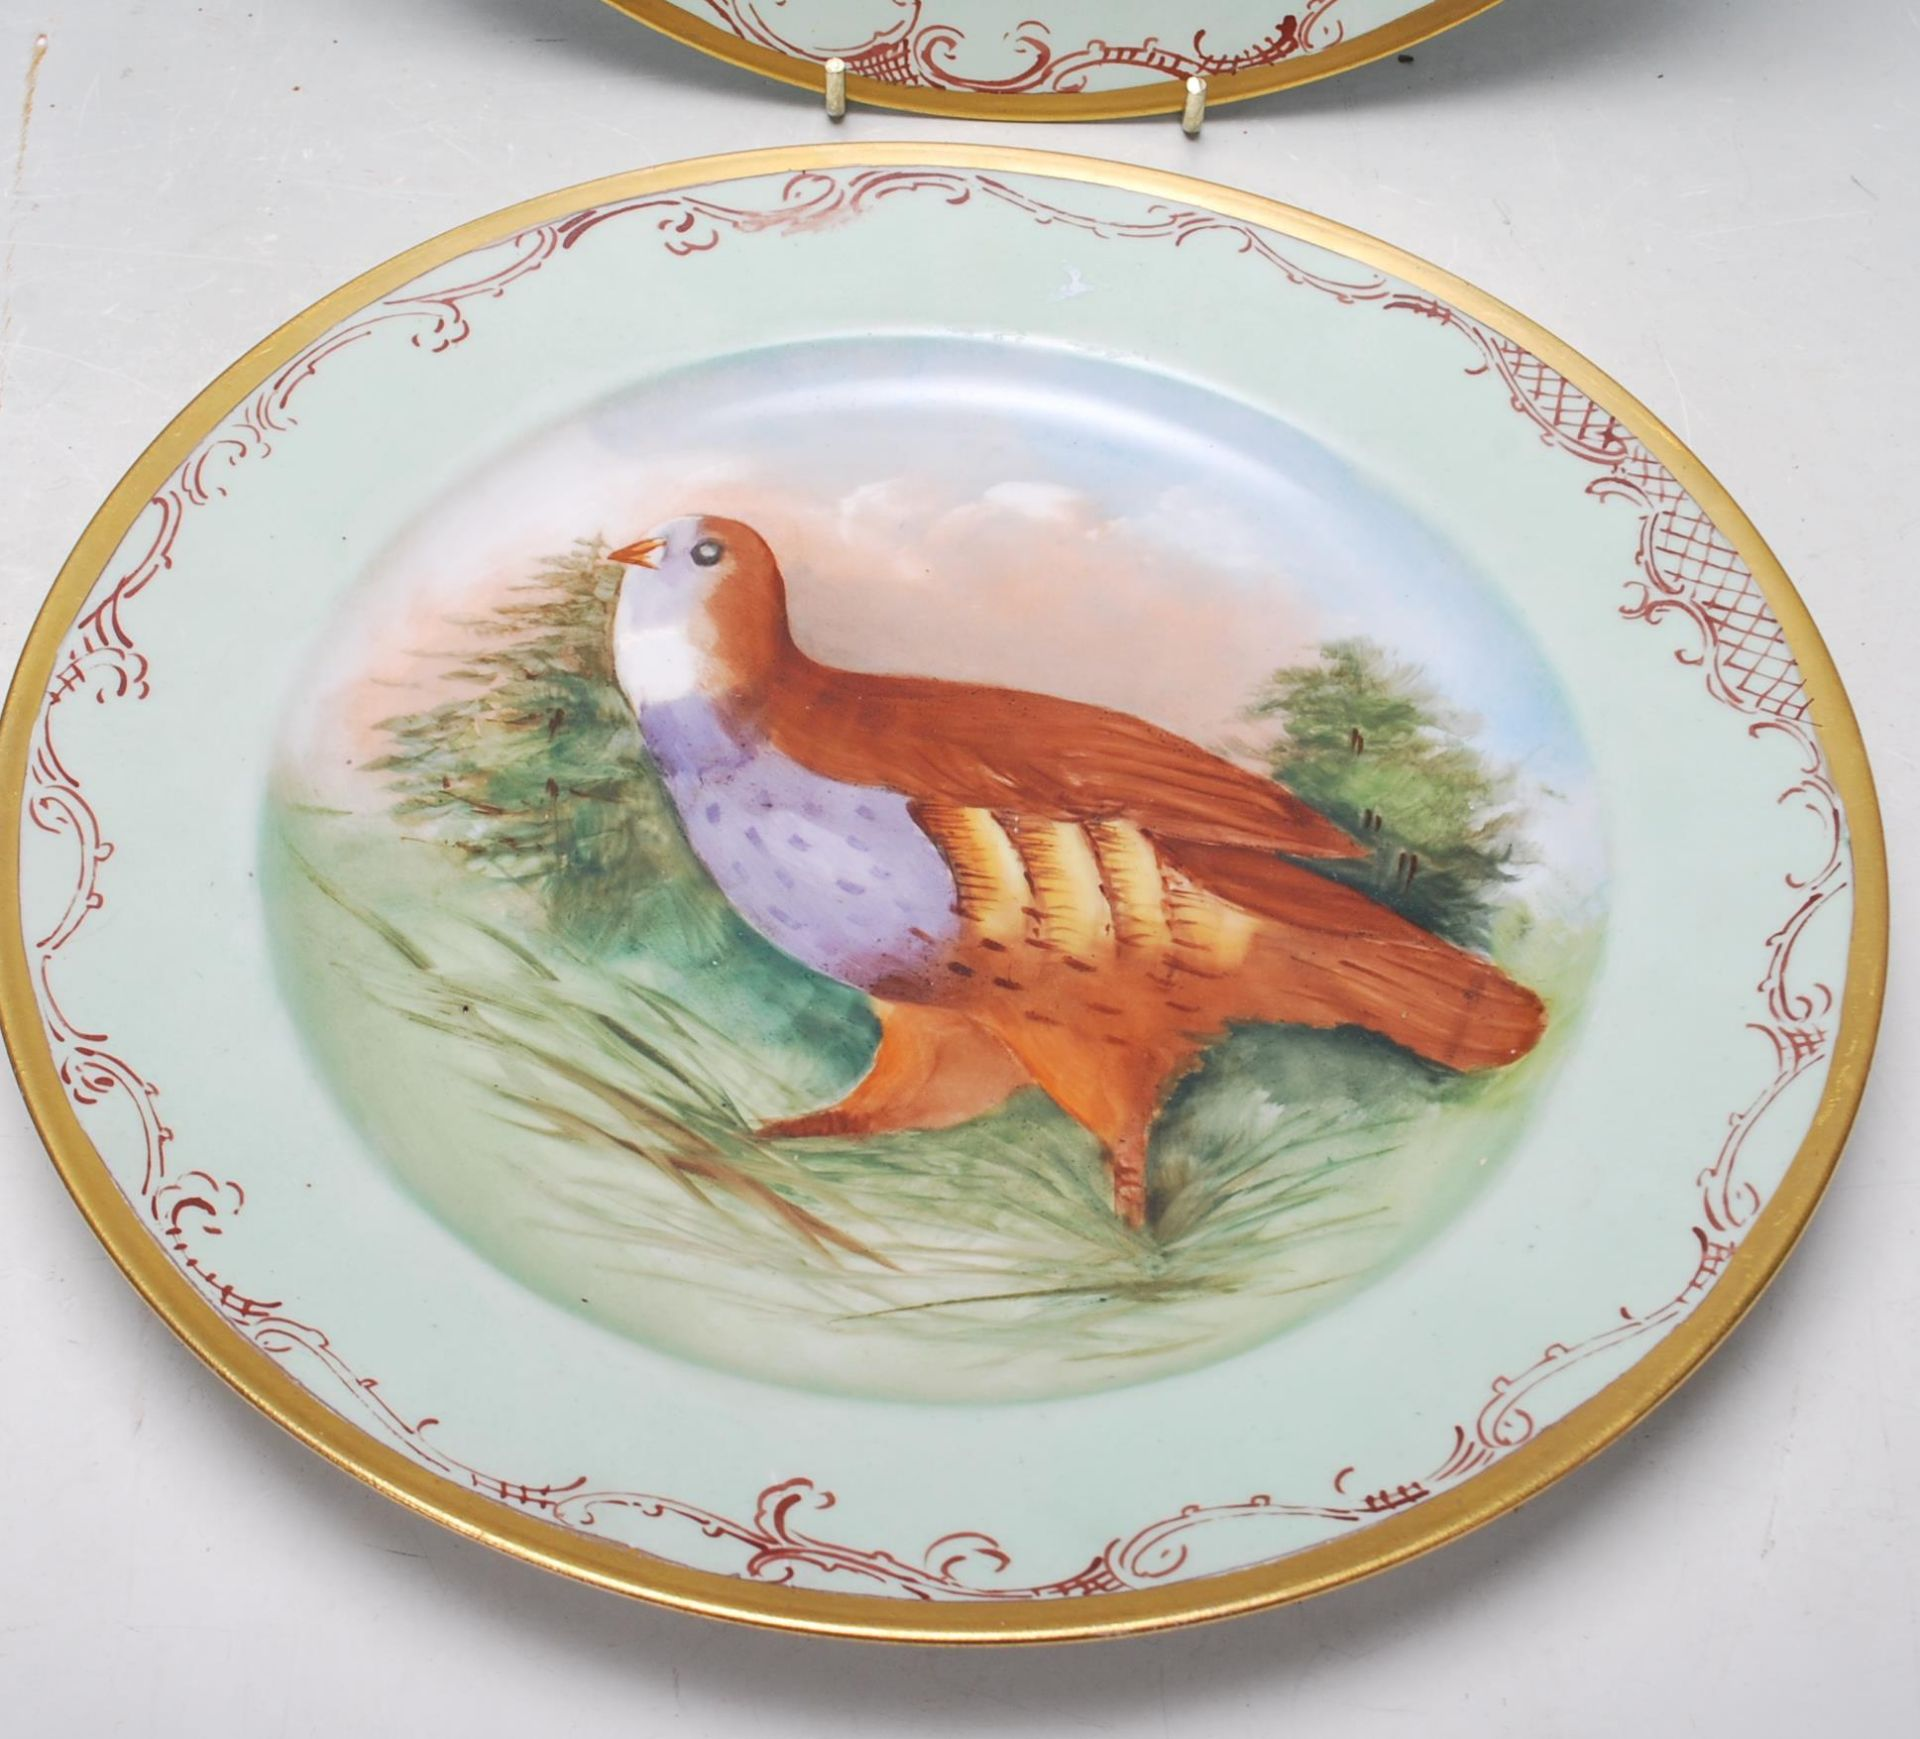 SET 4 JEAN POUYAT LIMOGES GAME BIRD CABINET PLATES - Image 4 of 6